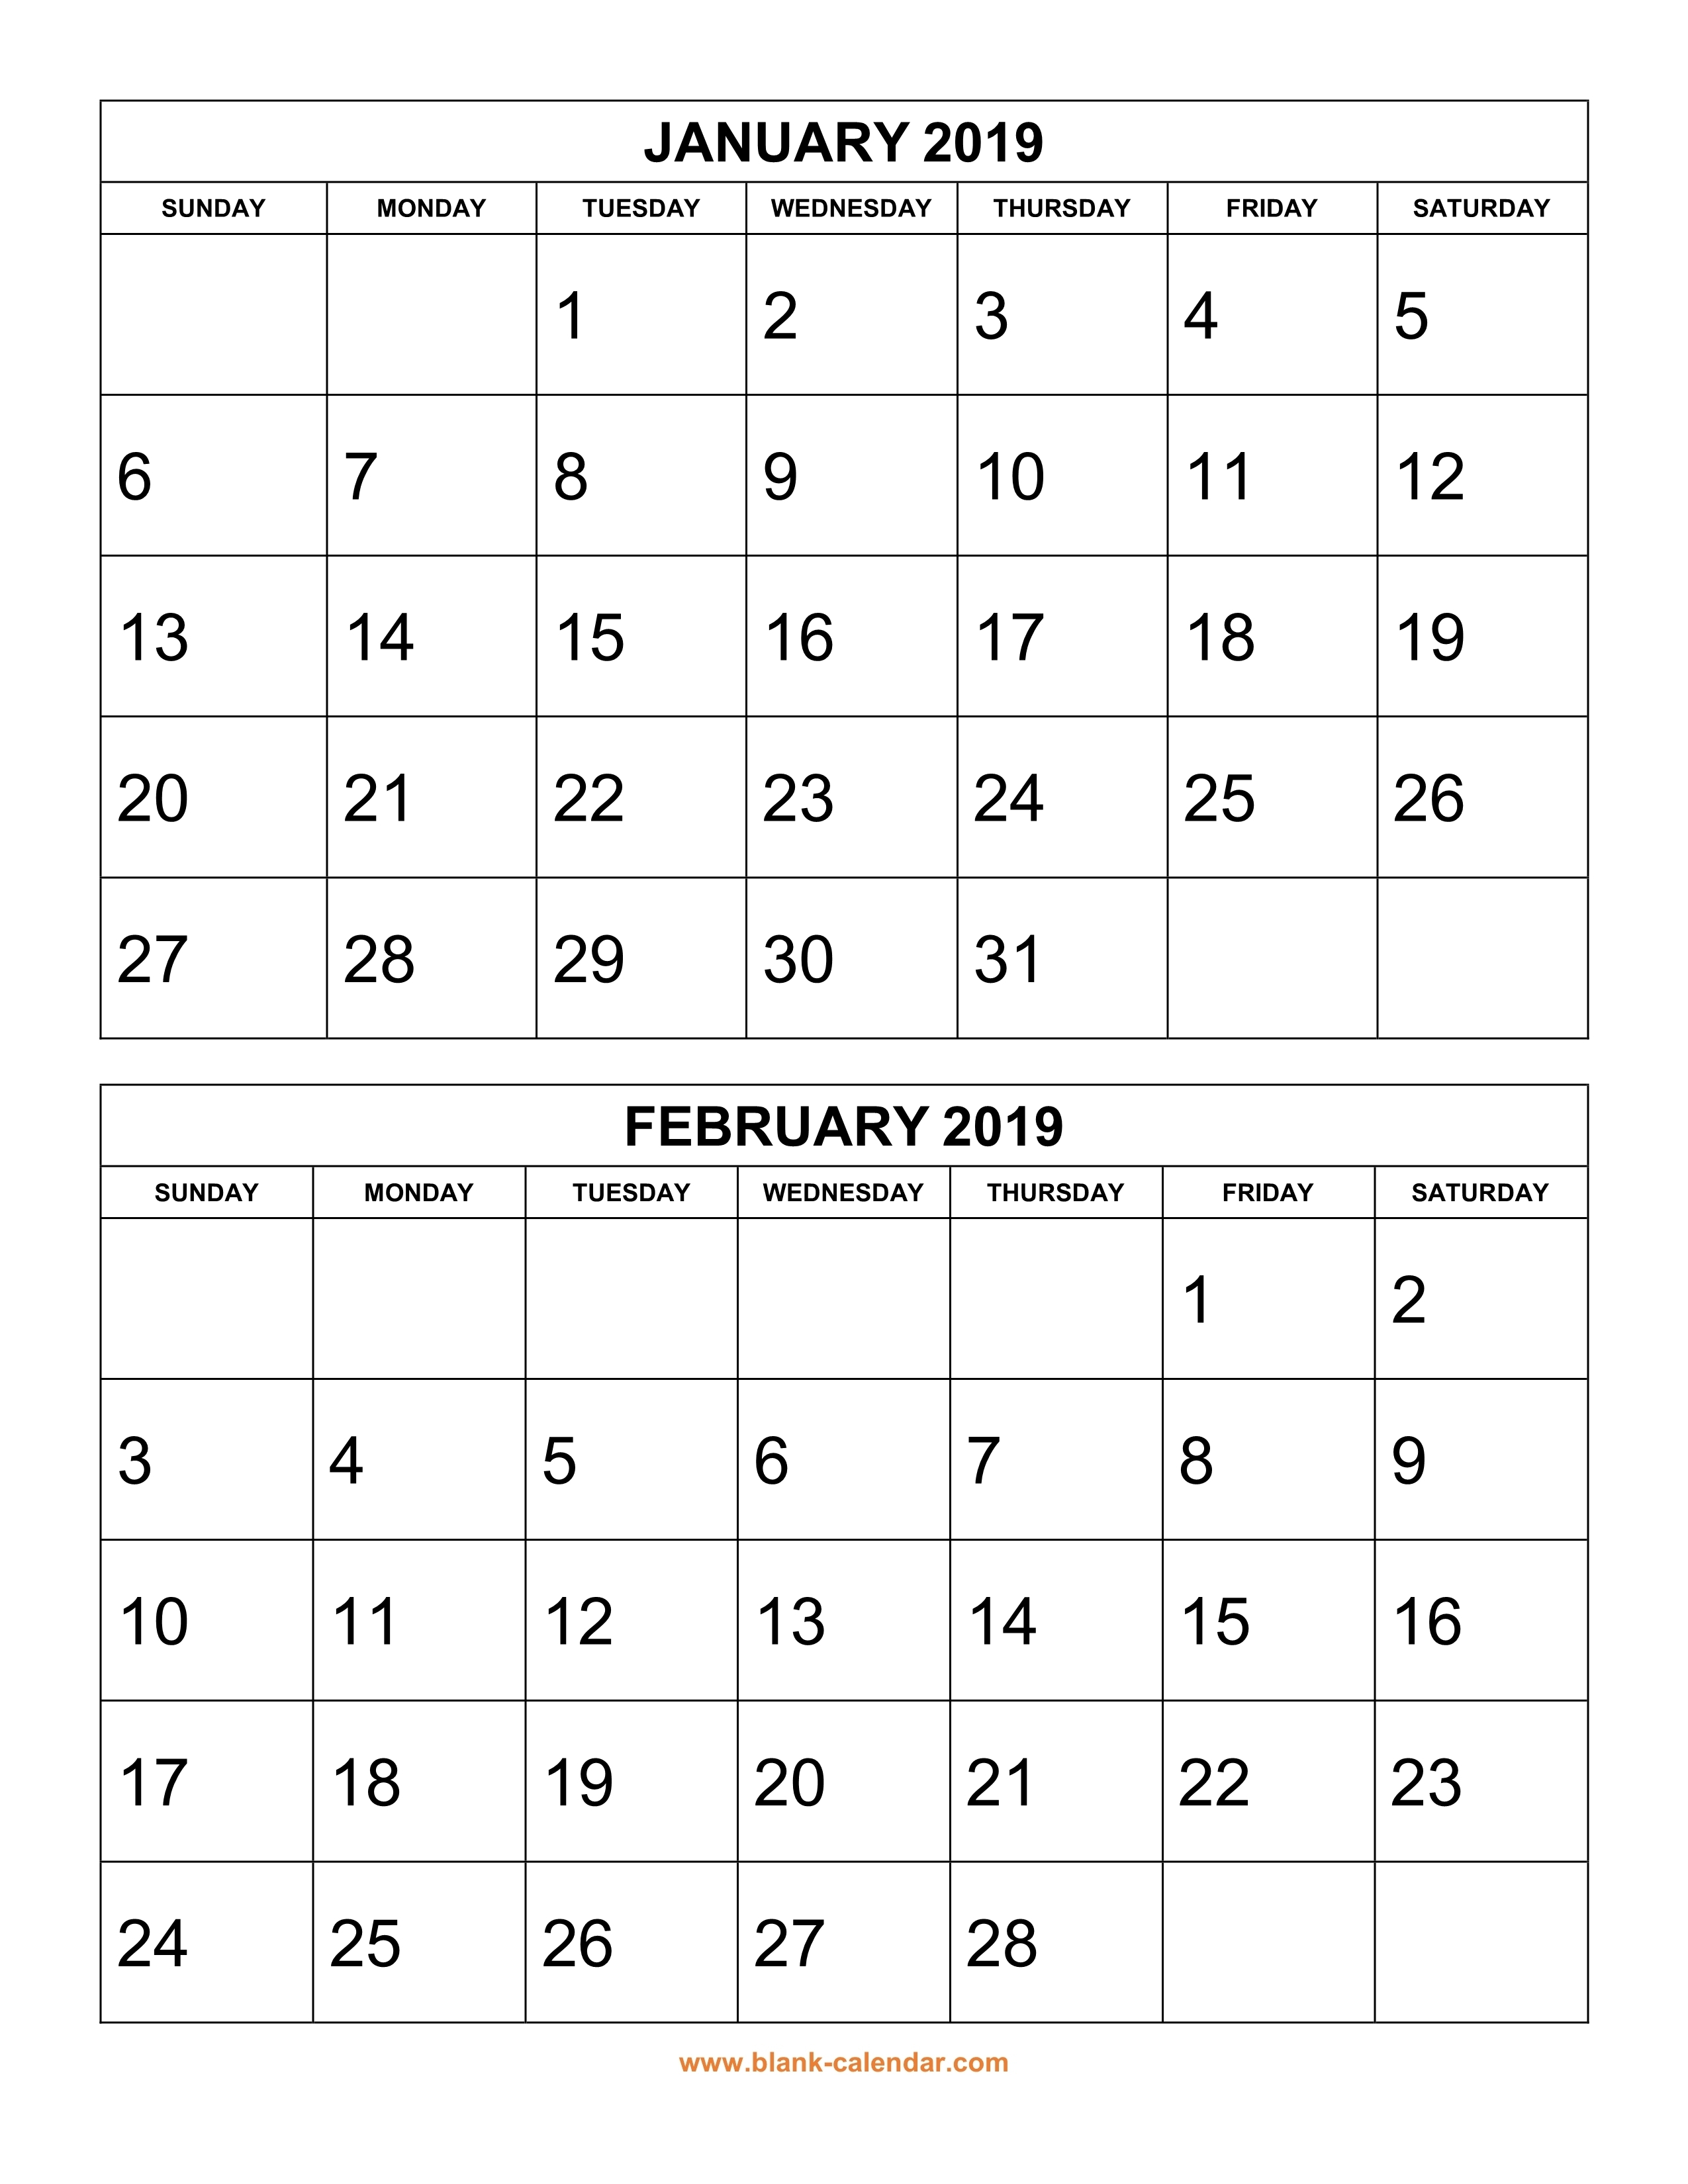 Collect Print A One Page Calendar For Month Of August 2019